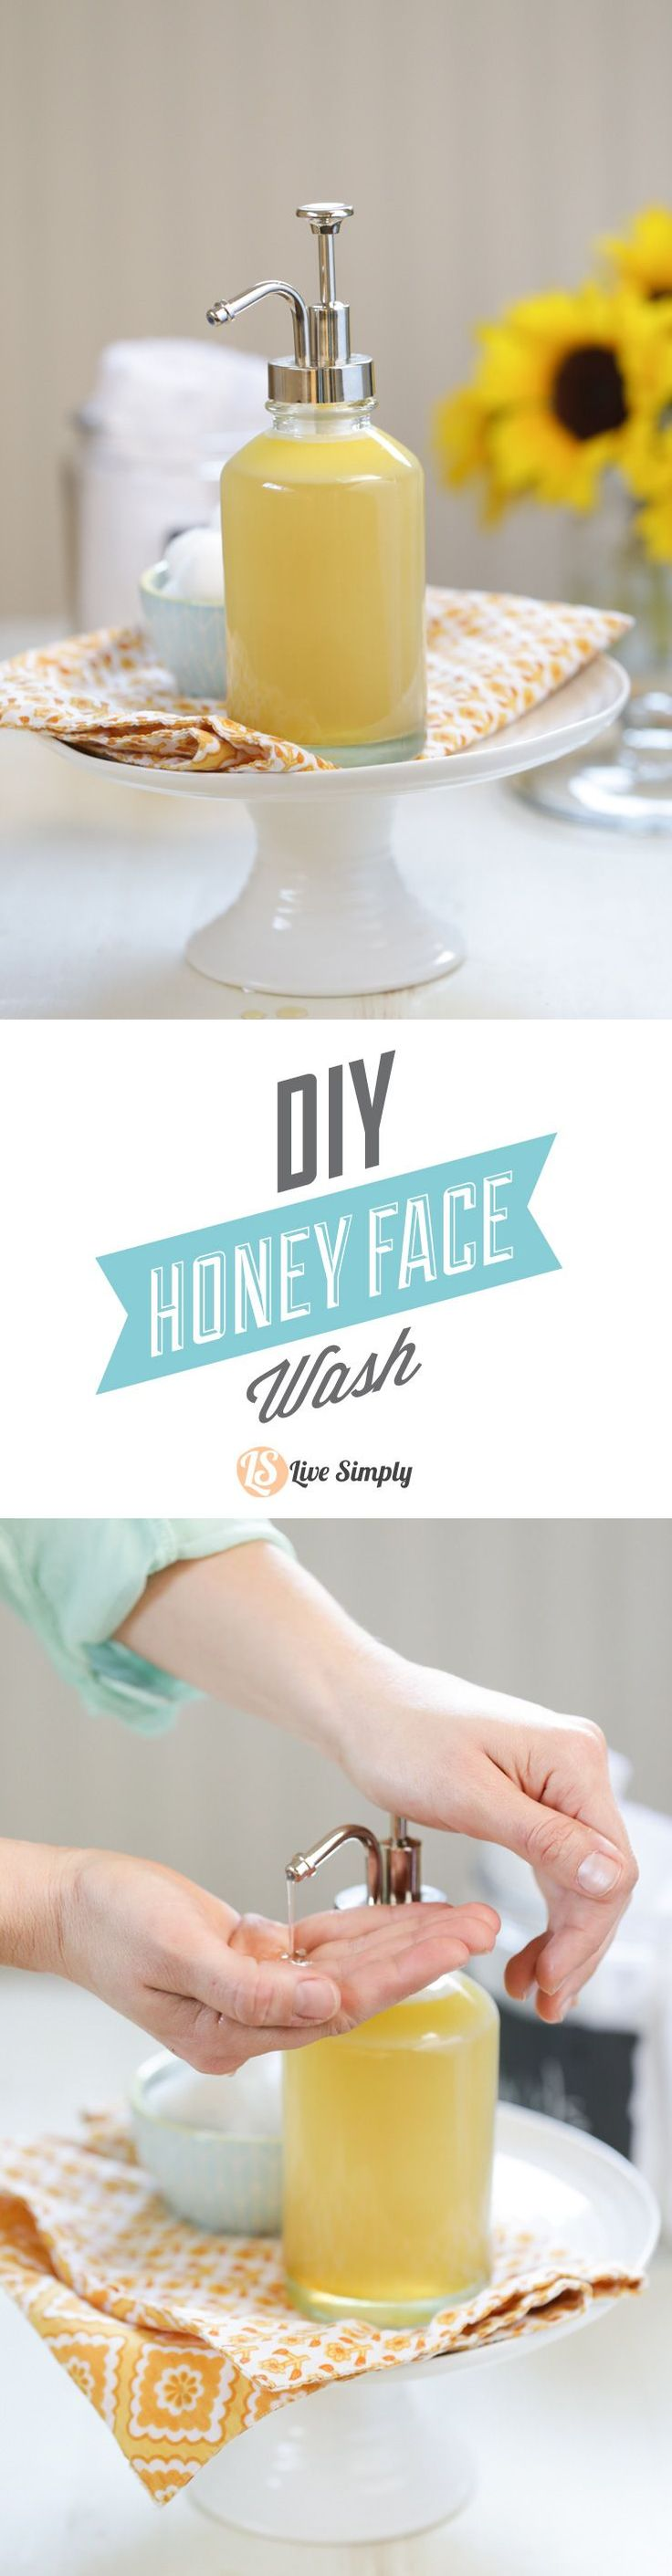 A DIY homemade honey face wash that's natural and effective for cleansing the sk...